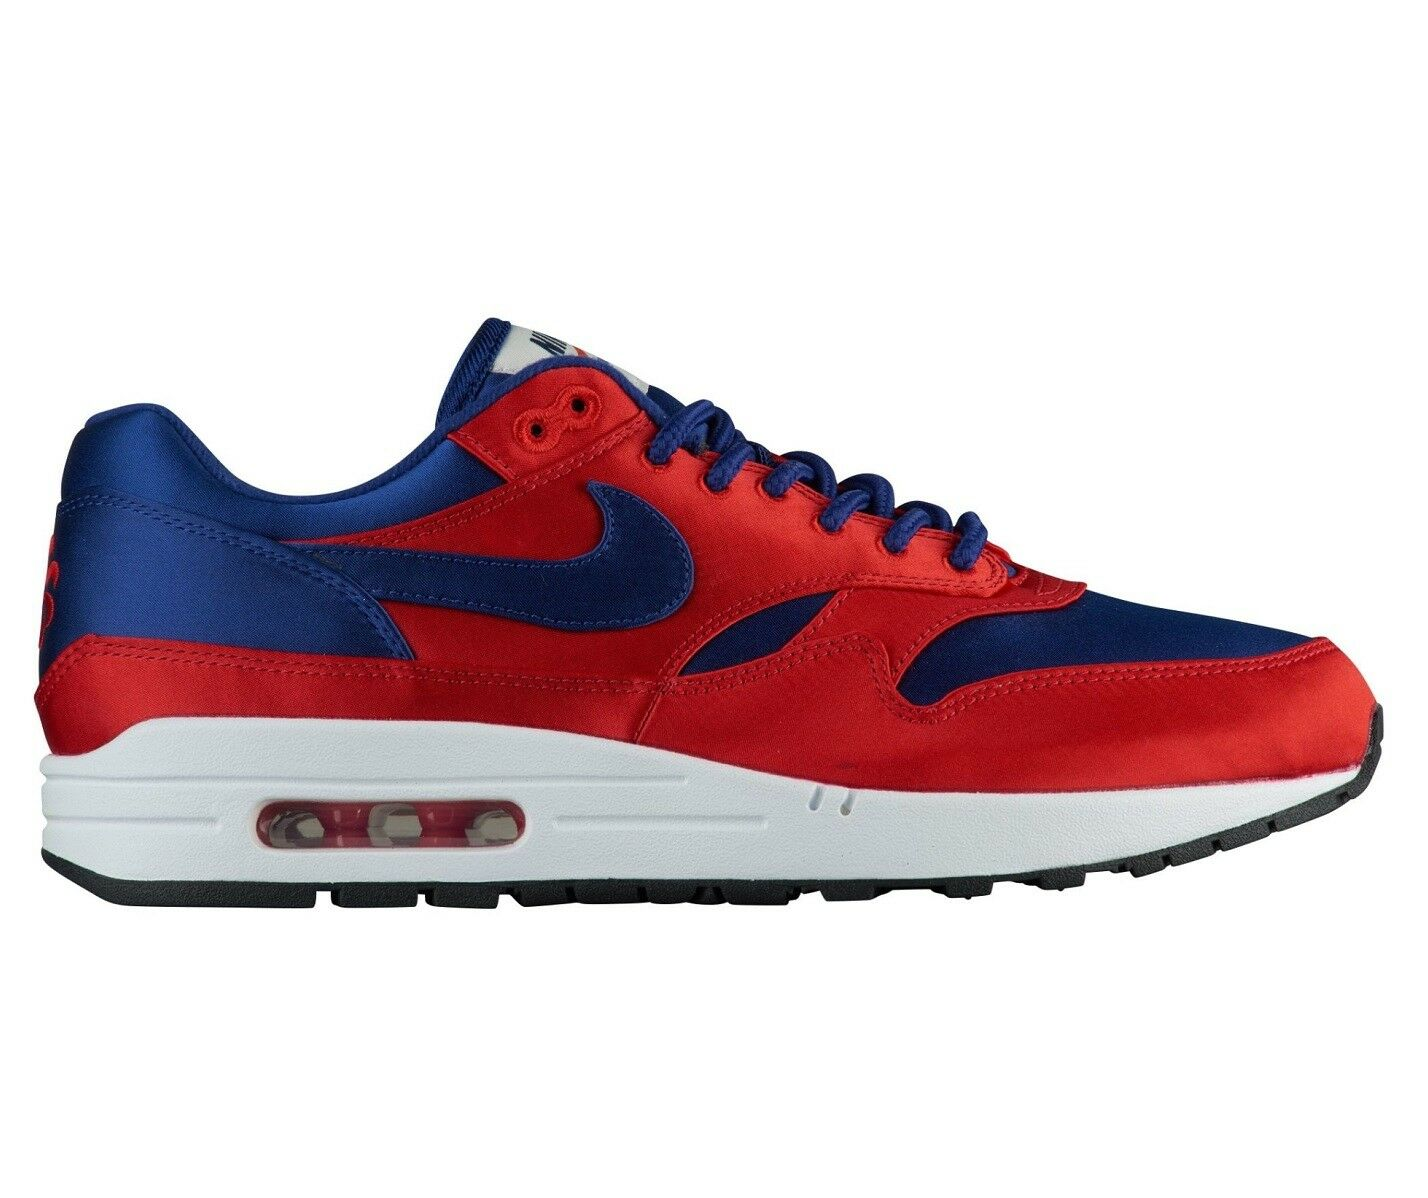 Nike Air Max 1 SE Satin Pack Mens AO1021-600 Red Royal Running shoes Size 8.5